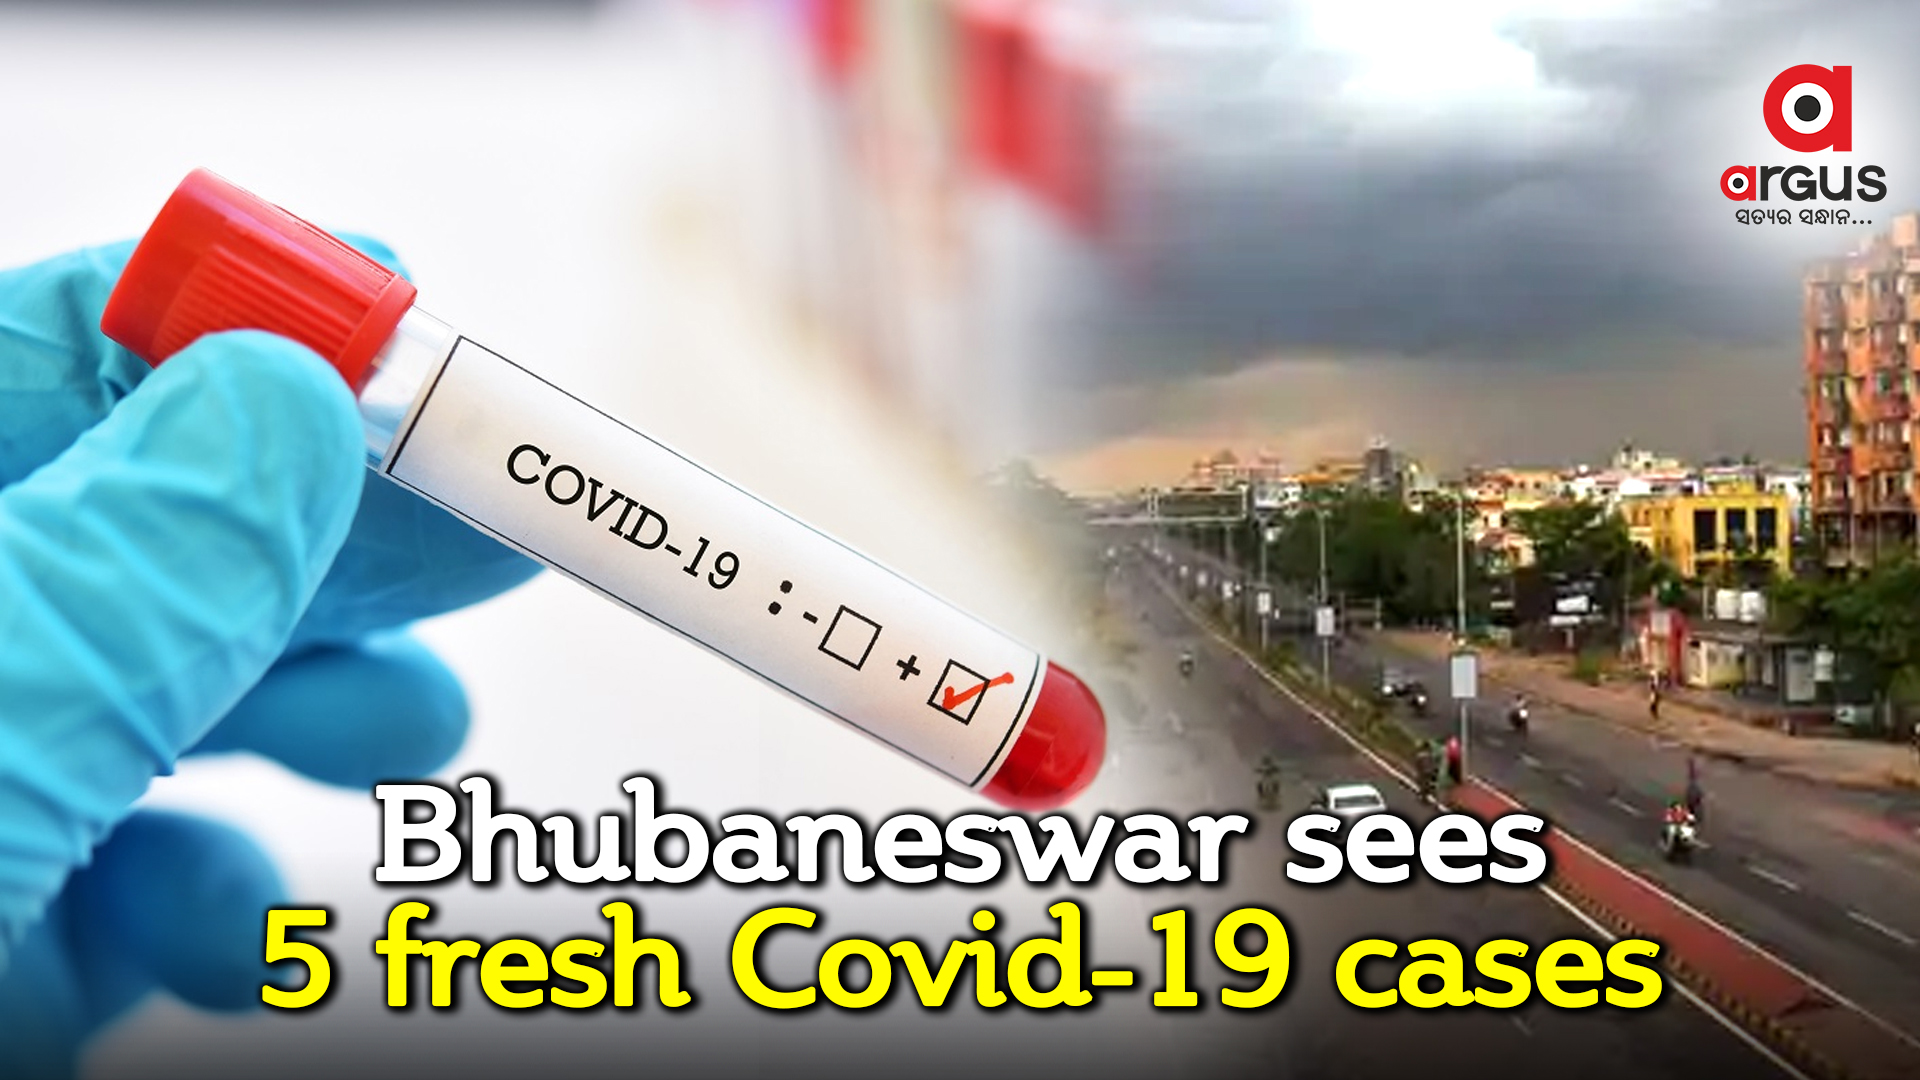 Bhubaneswar reports 9 new Covid-19 cases, 7 recoveries